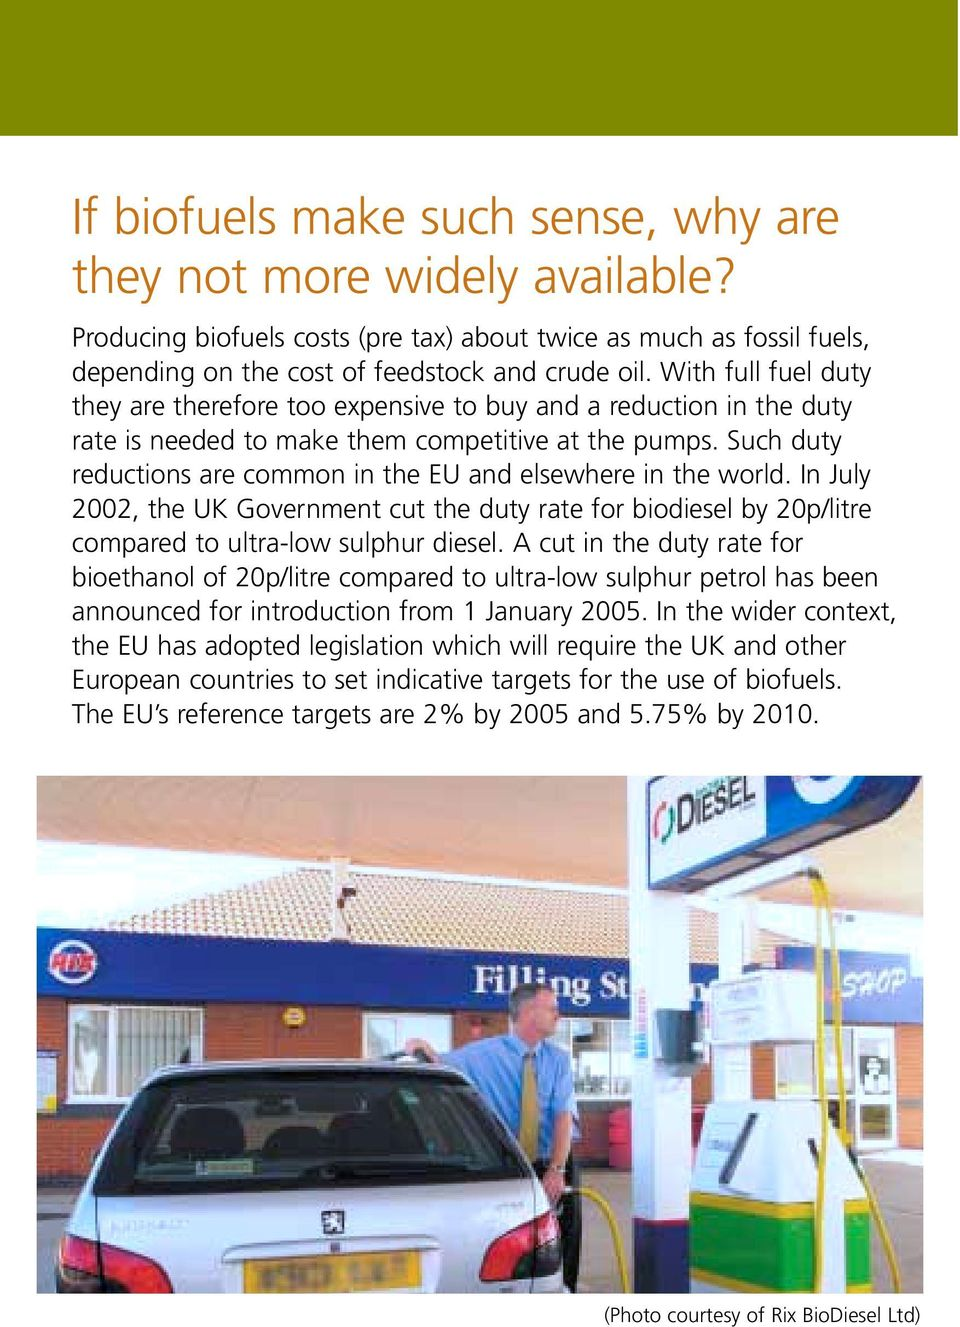 Such duty reductions are common in the EU and elsewhere in the world. In July 2002, the UK Government cut the duty rate for biodiesel by 20p/litre compared to ultra-low sulphur diesel.